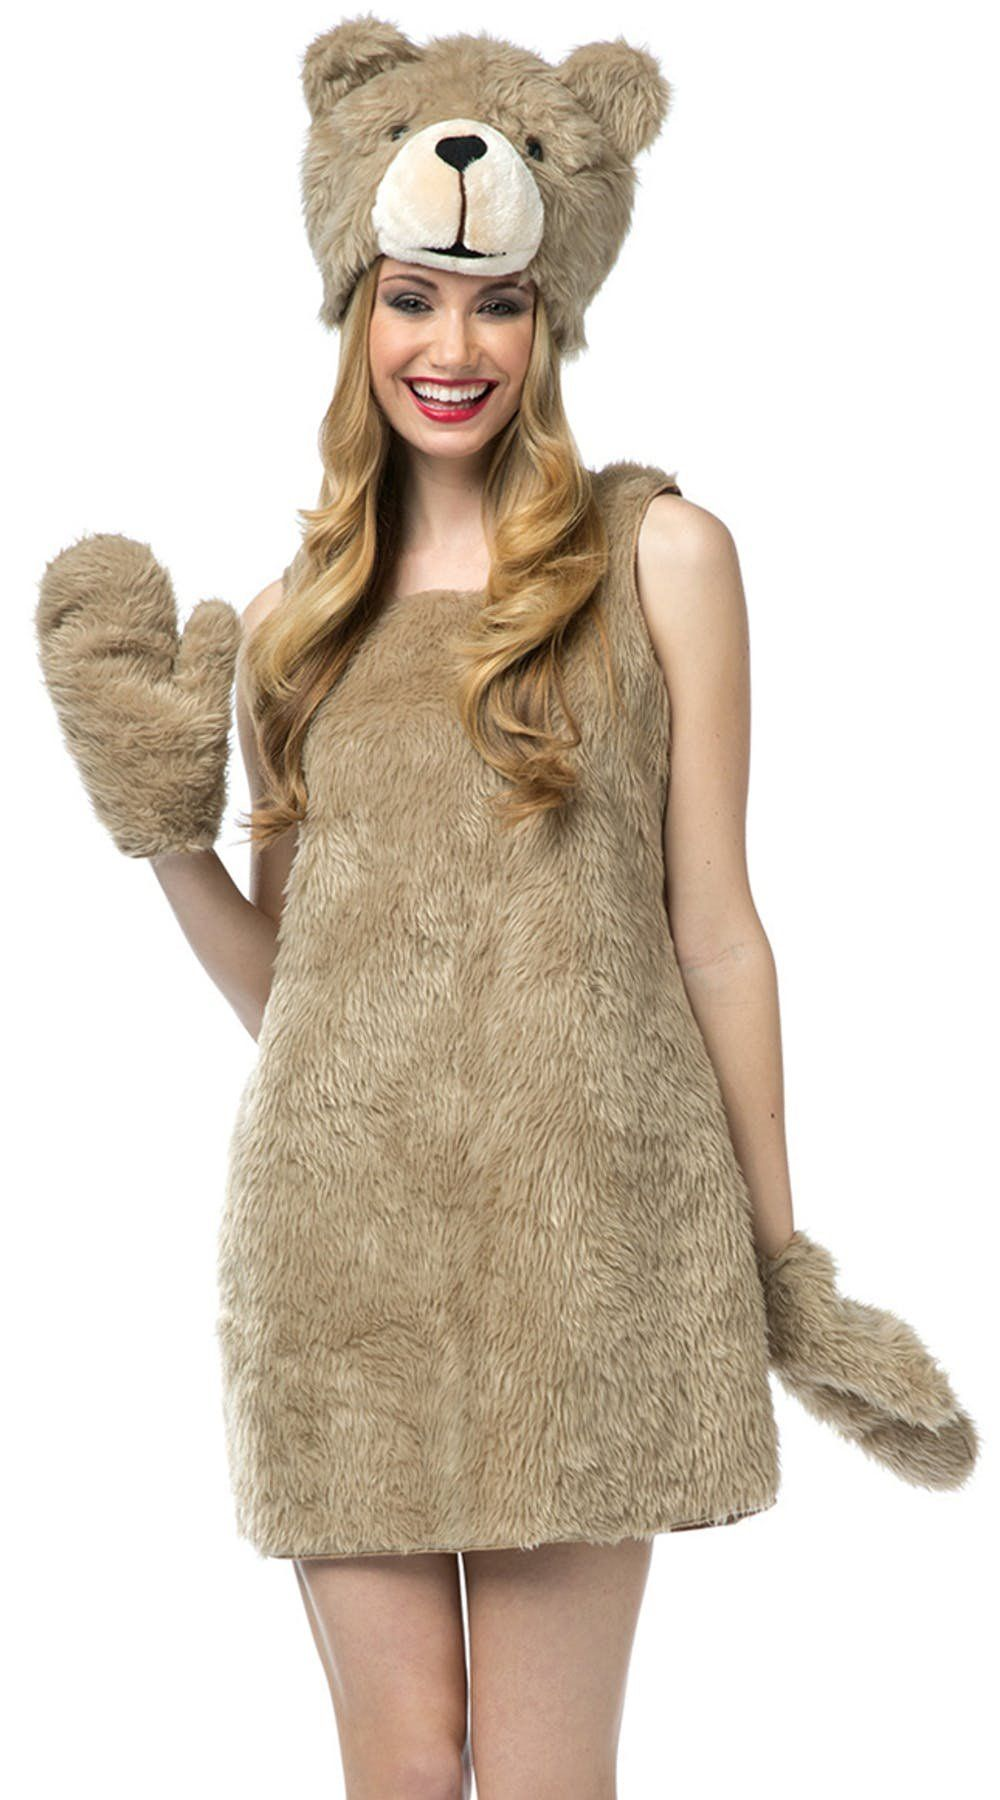 a2446b9f2e57 Funny, sexy Halloween costumes, like this Teddy Bear costume ...